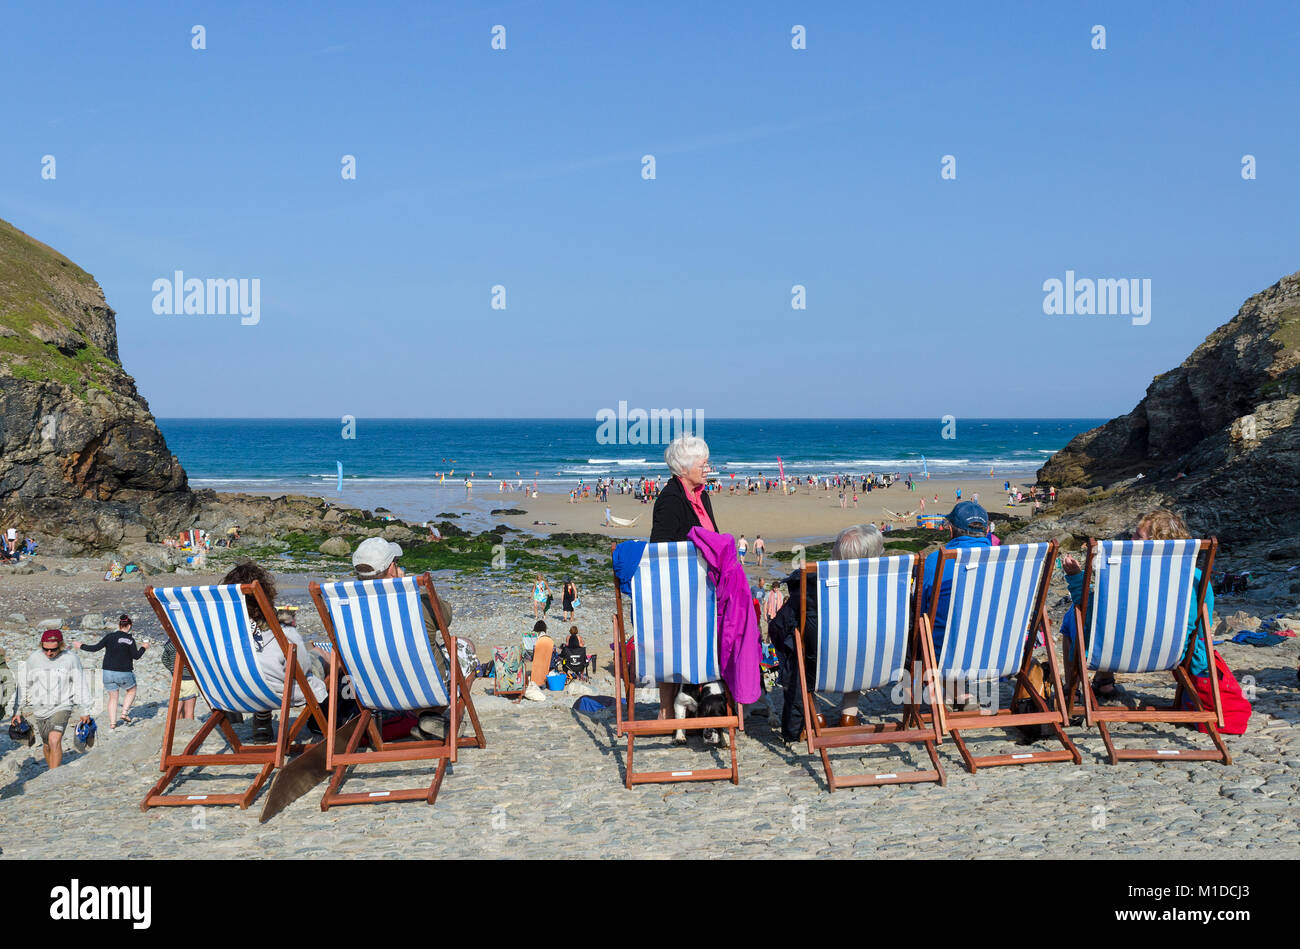 summer at chapel porth beach near st.agnes in cornwall, england, britain, uk. - Stock Image